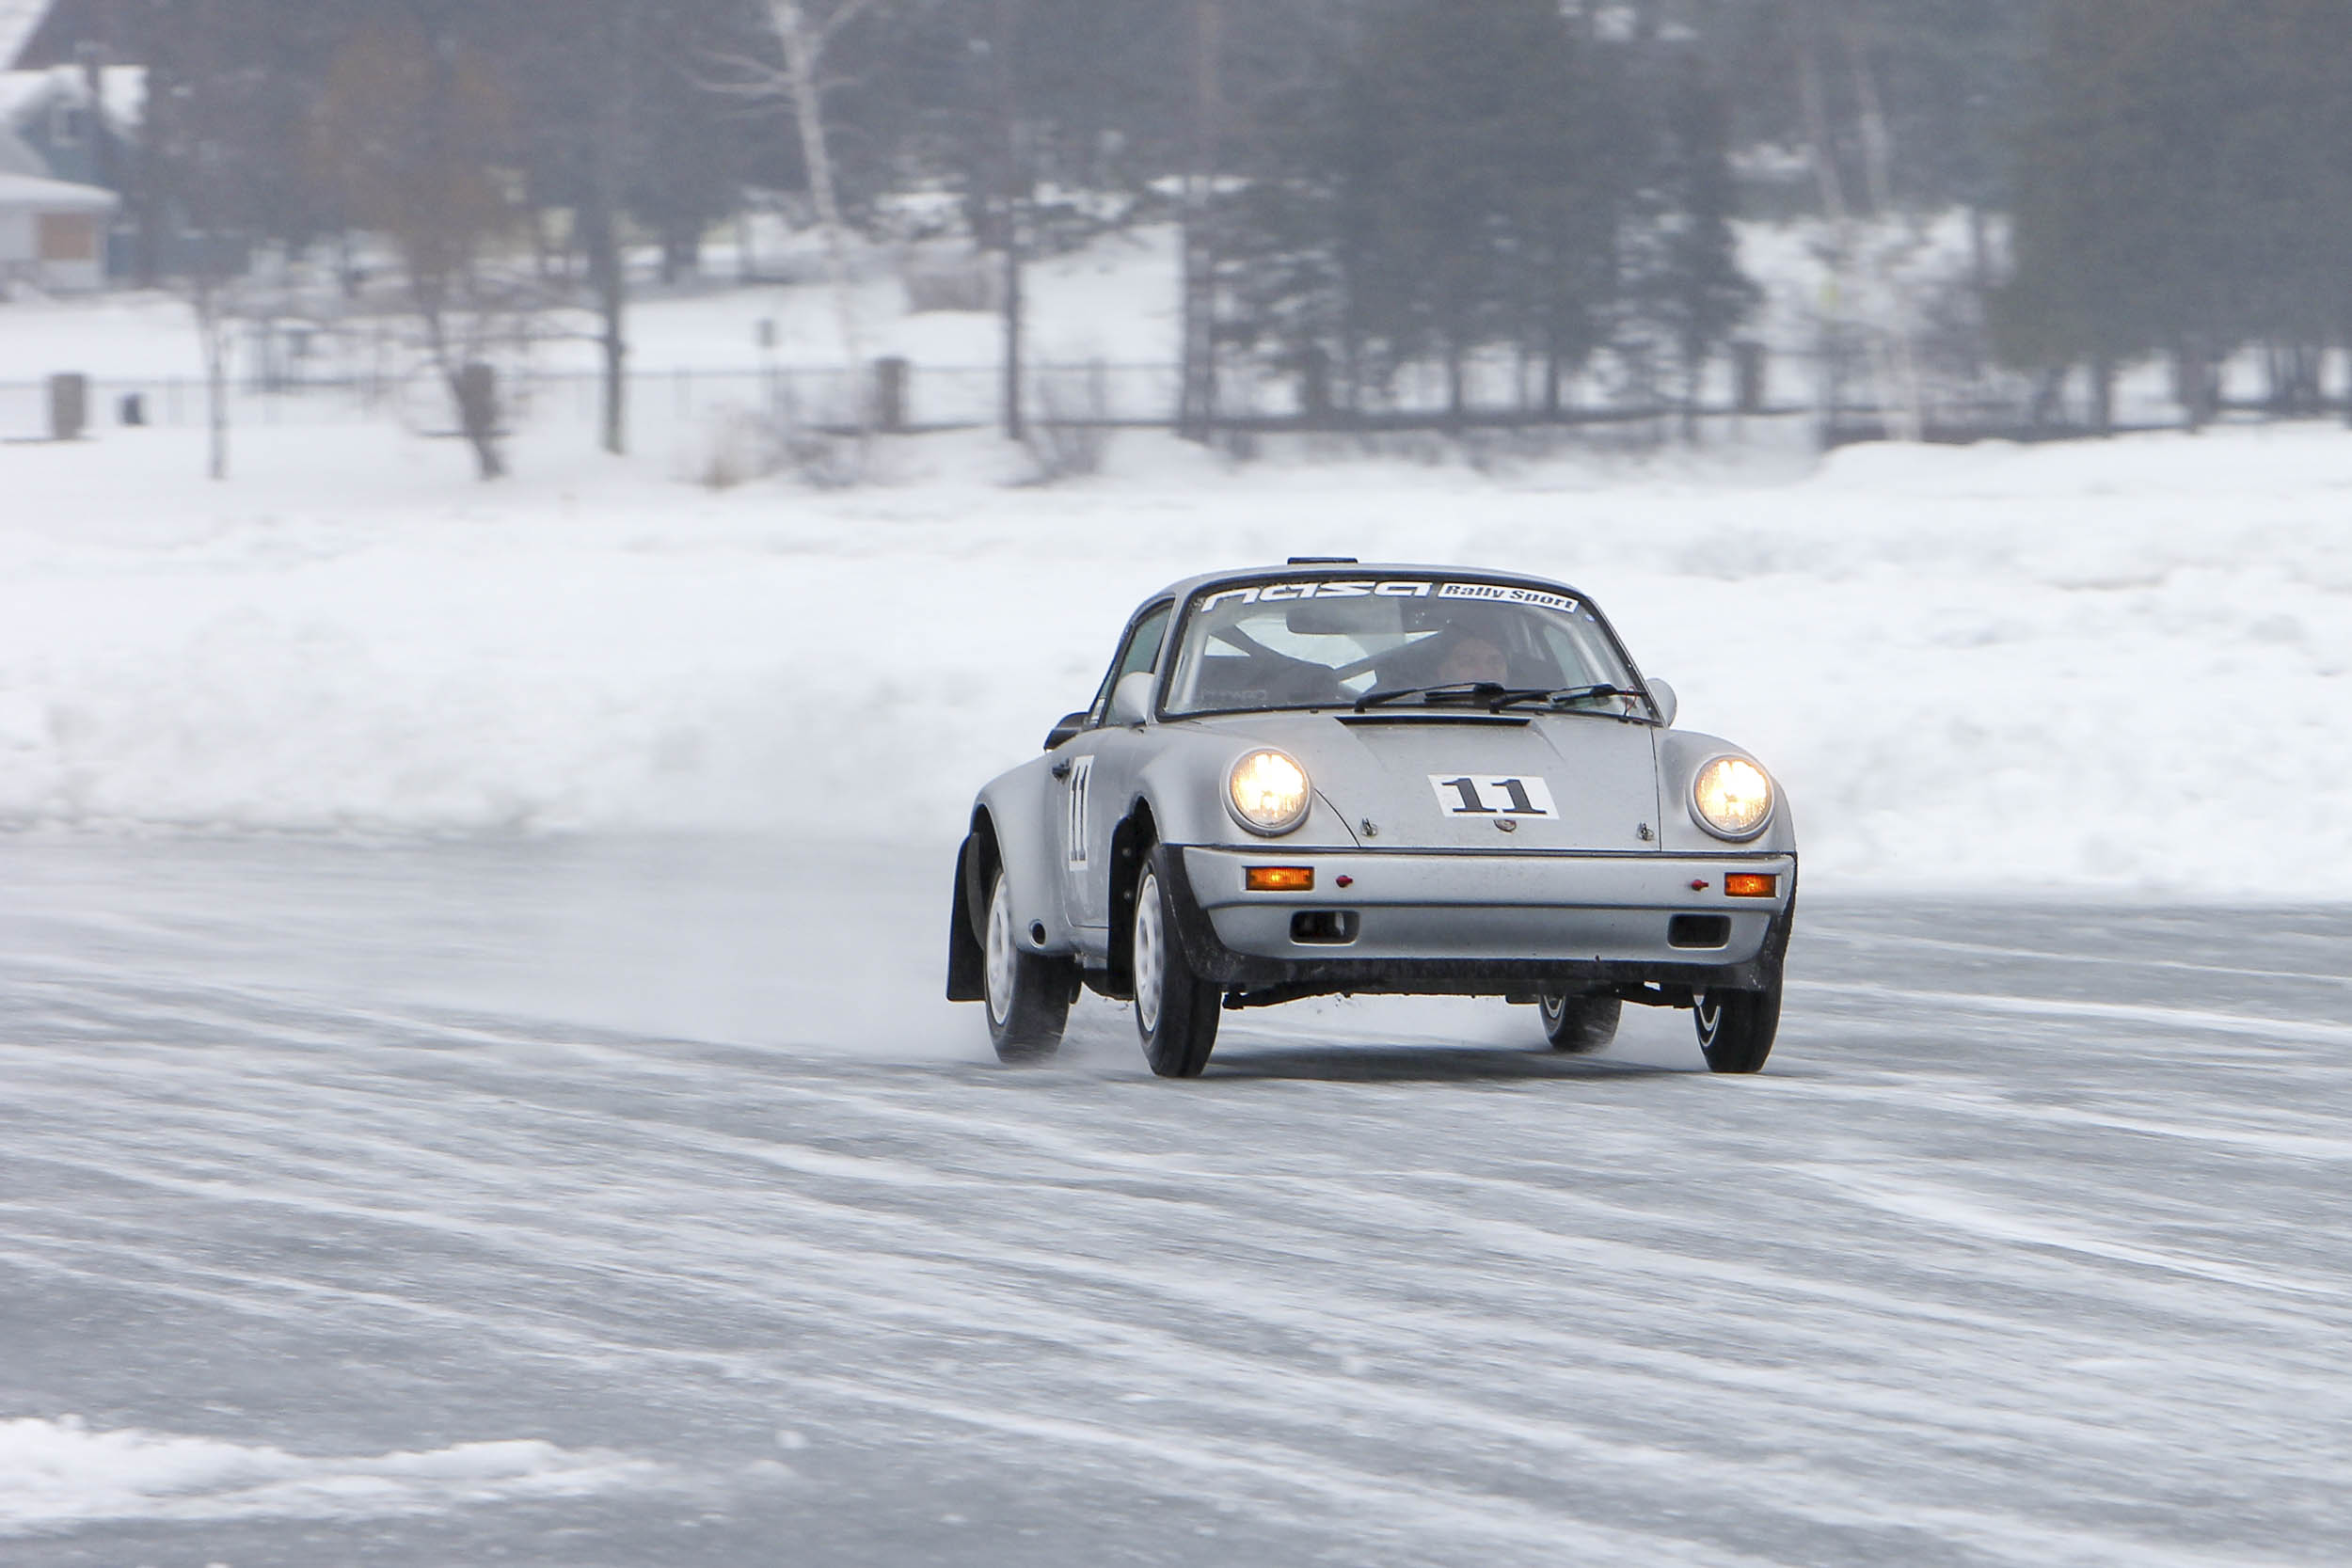 Ice racing glory could be as easy as buying good snow tires thumbnail